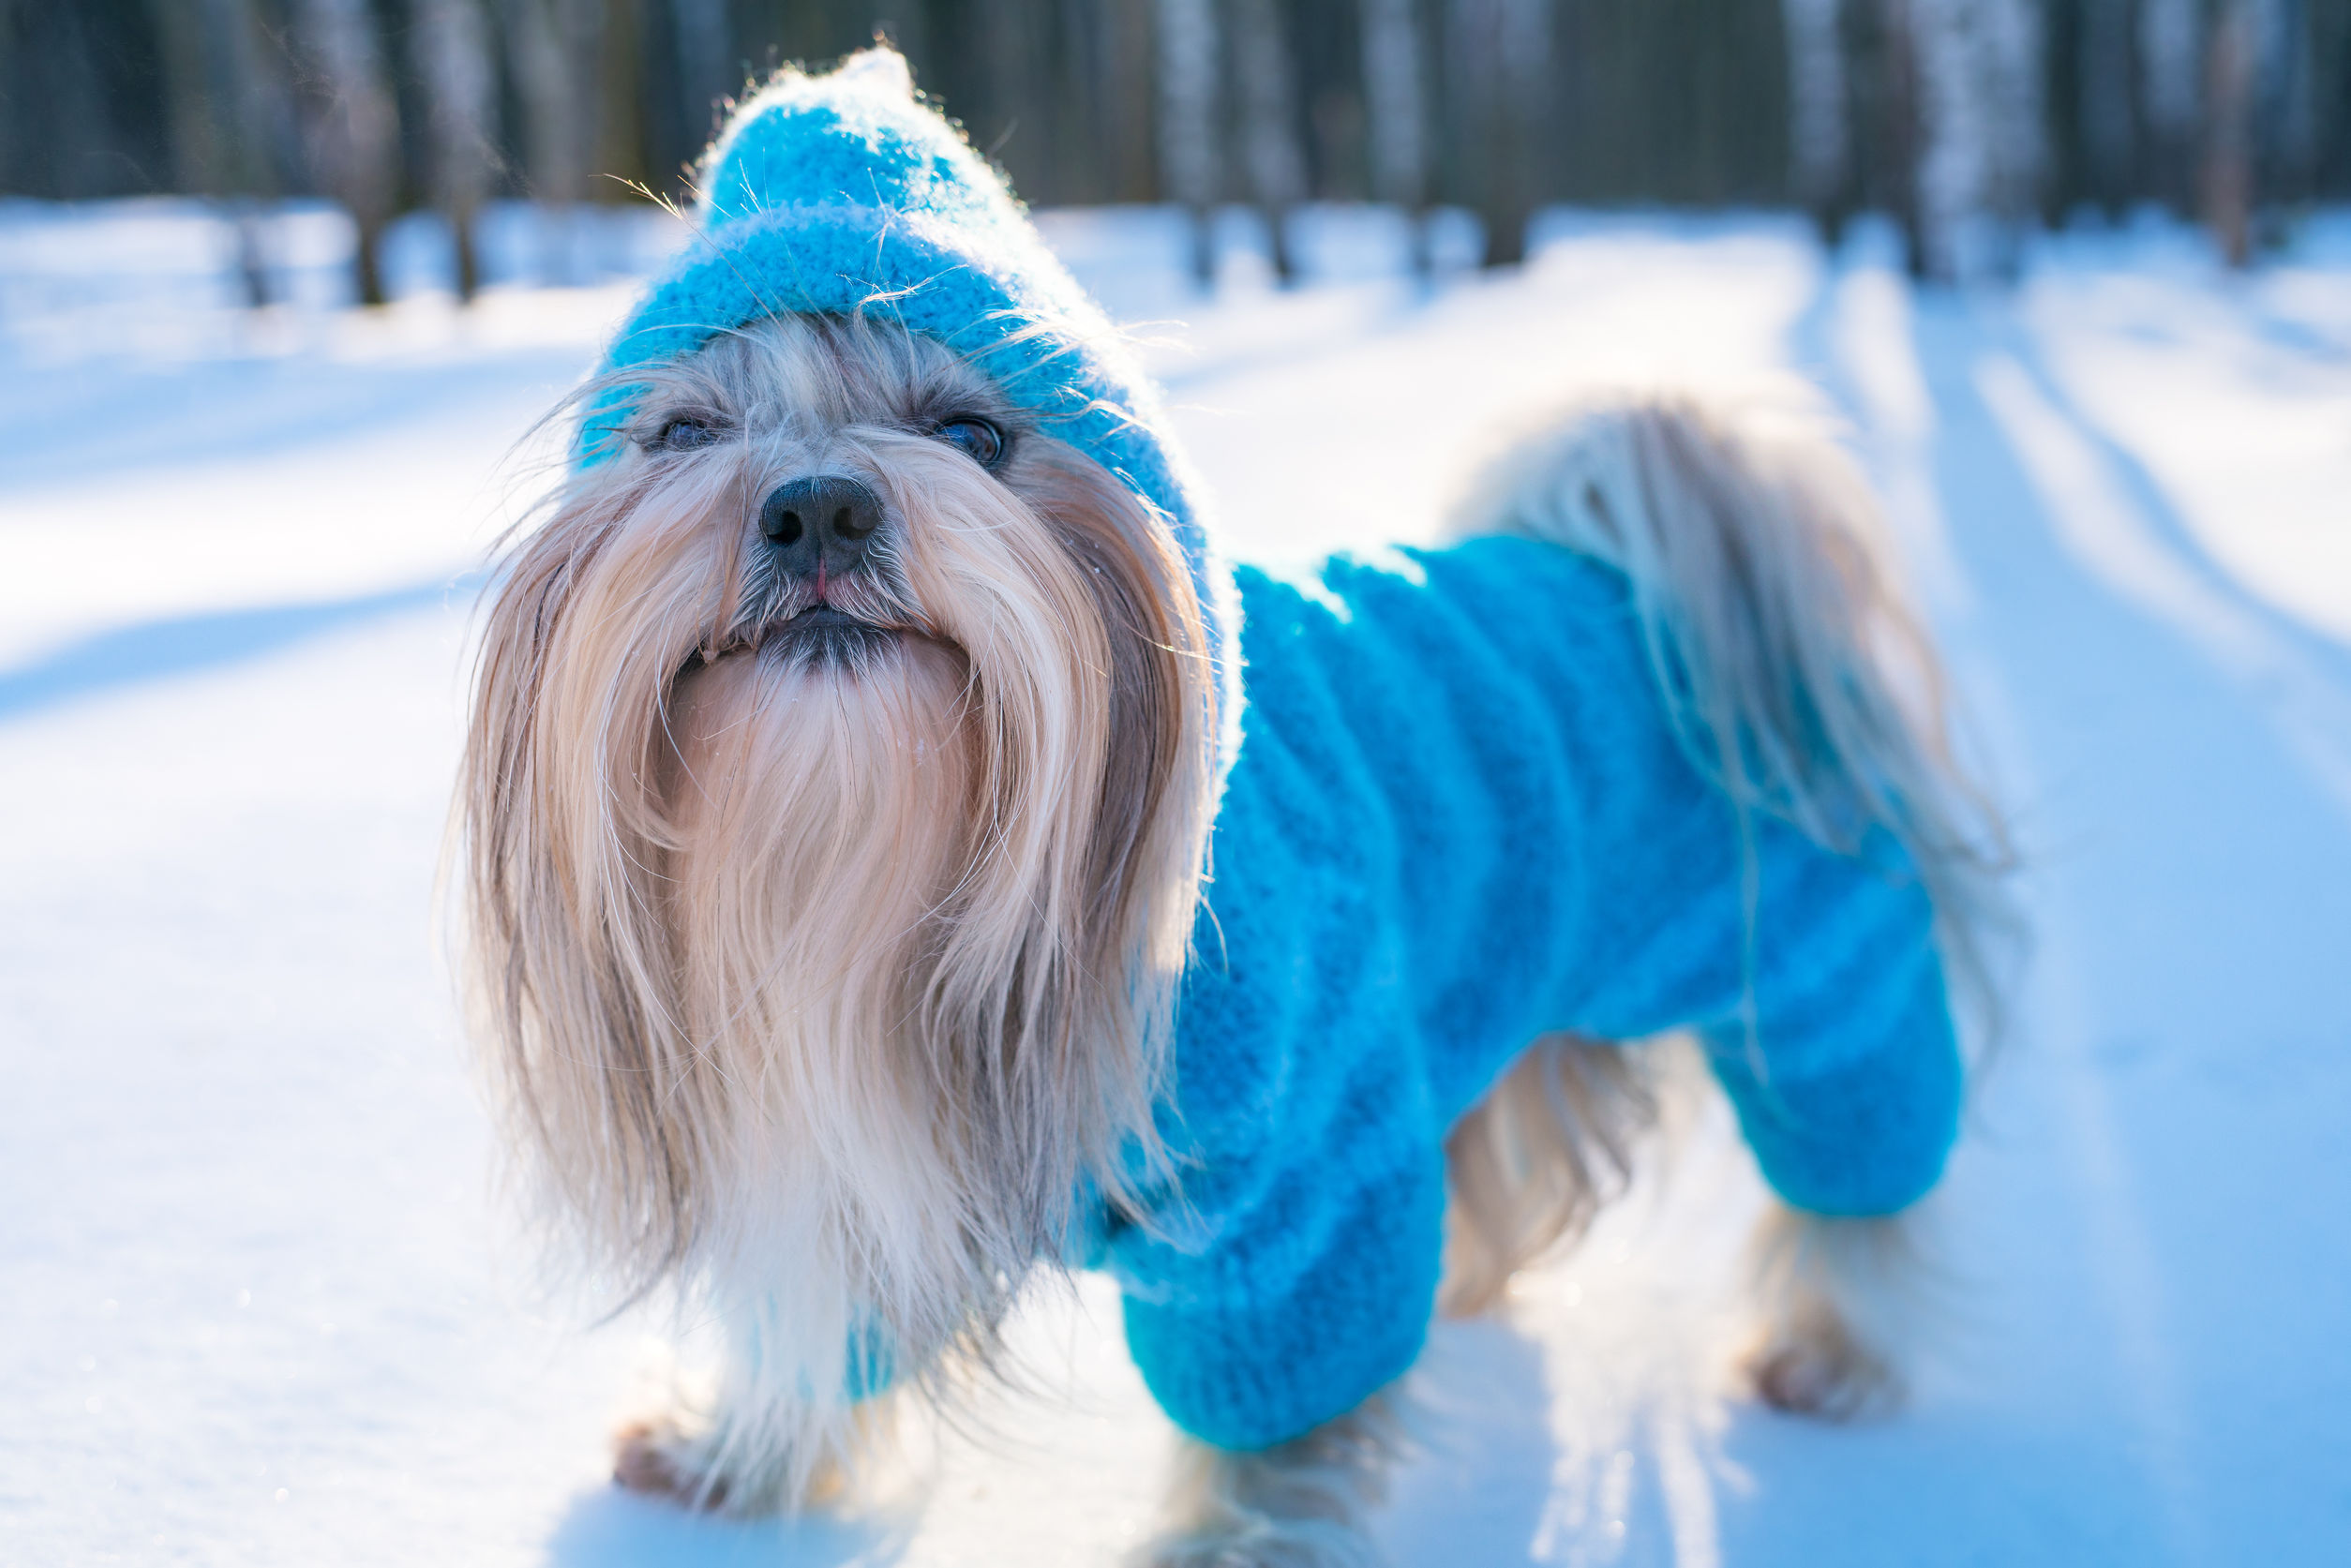 80346687 - shih tzu dog in blue knitted sweater winter outdoors portrait